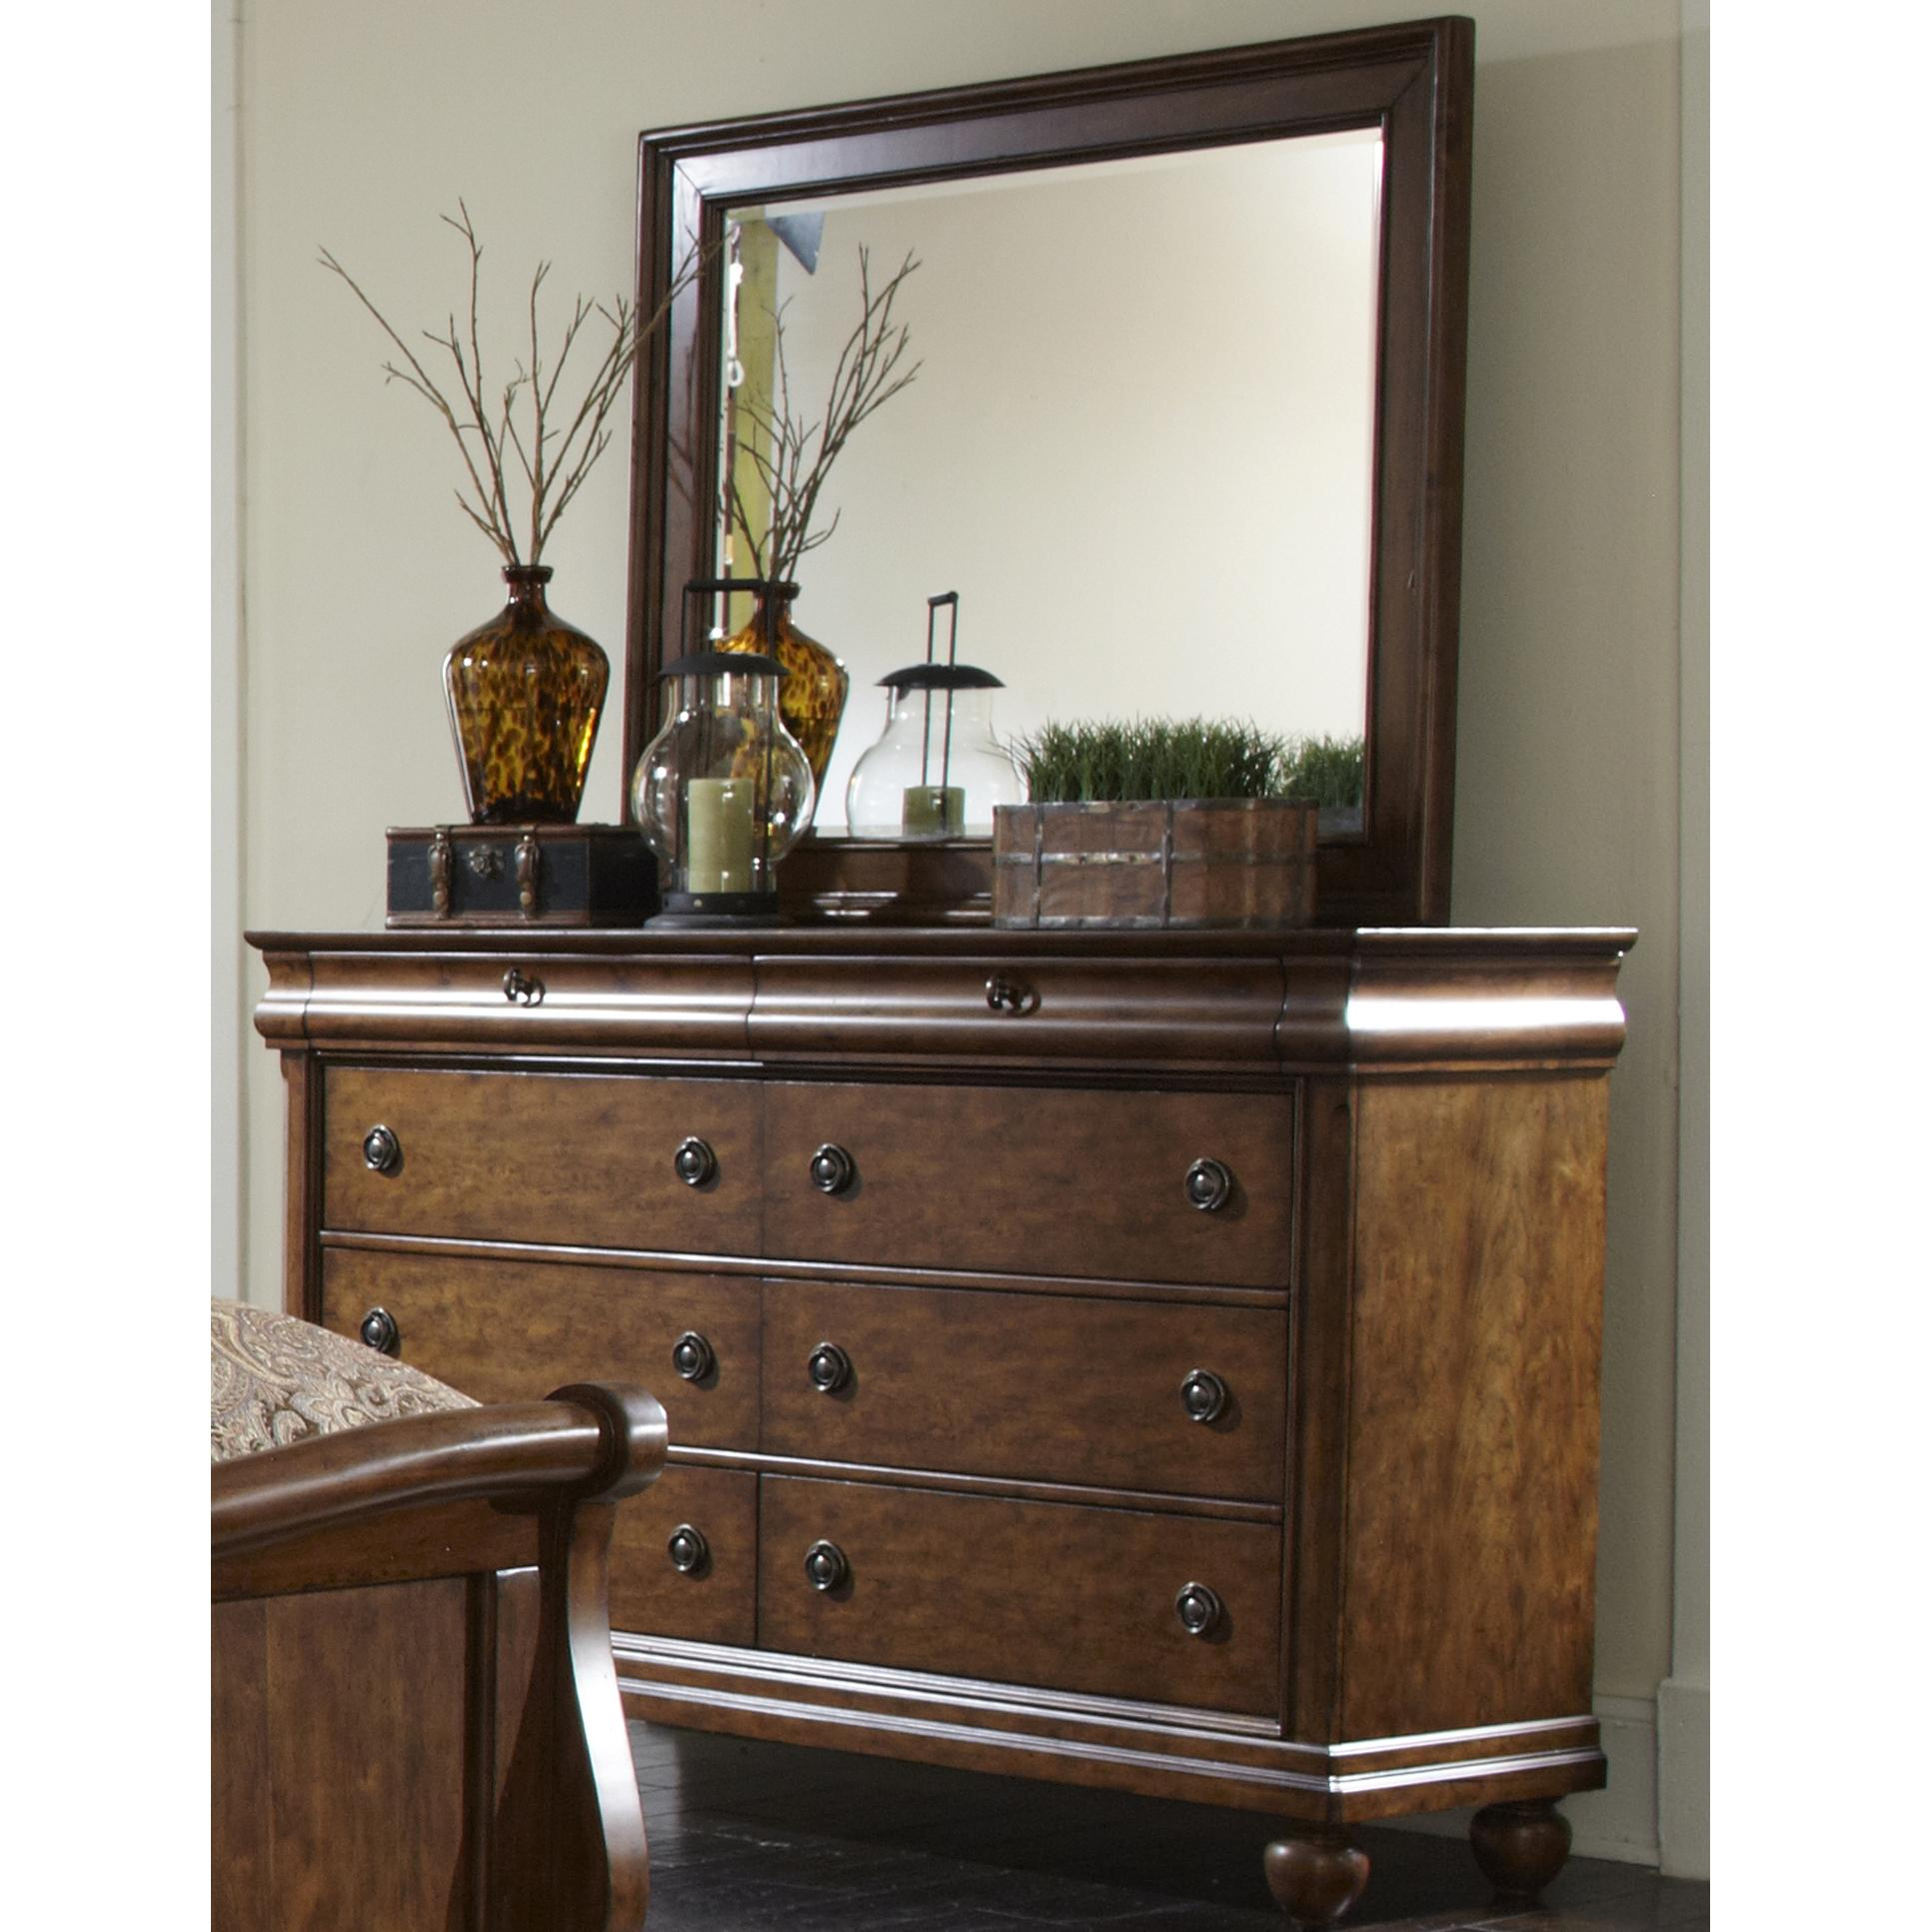 Liberty Furniture Rustic Traditions Dresser and Mirror - Item Number: 589-BR-DM